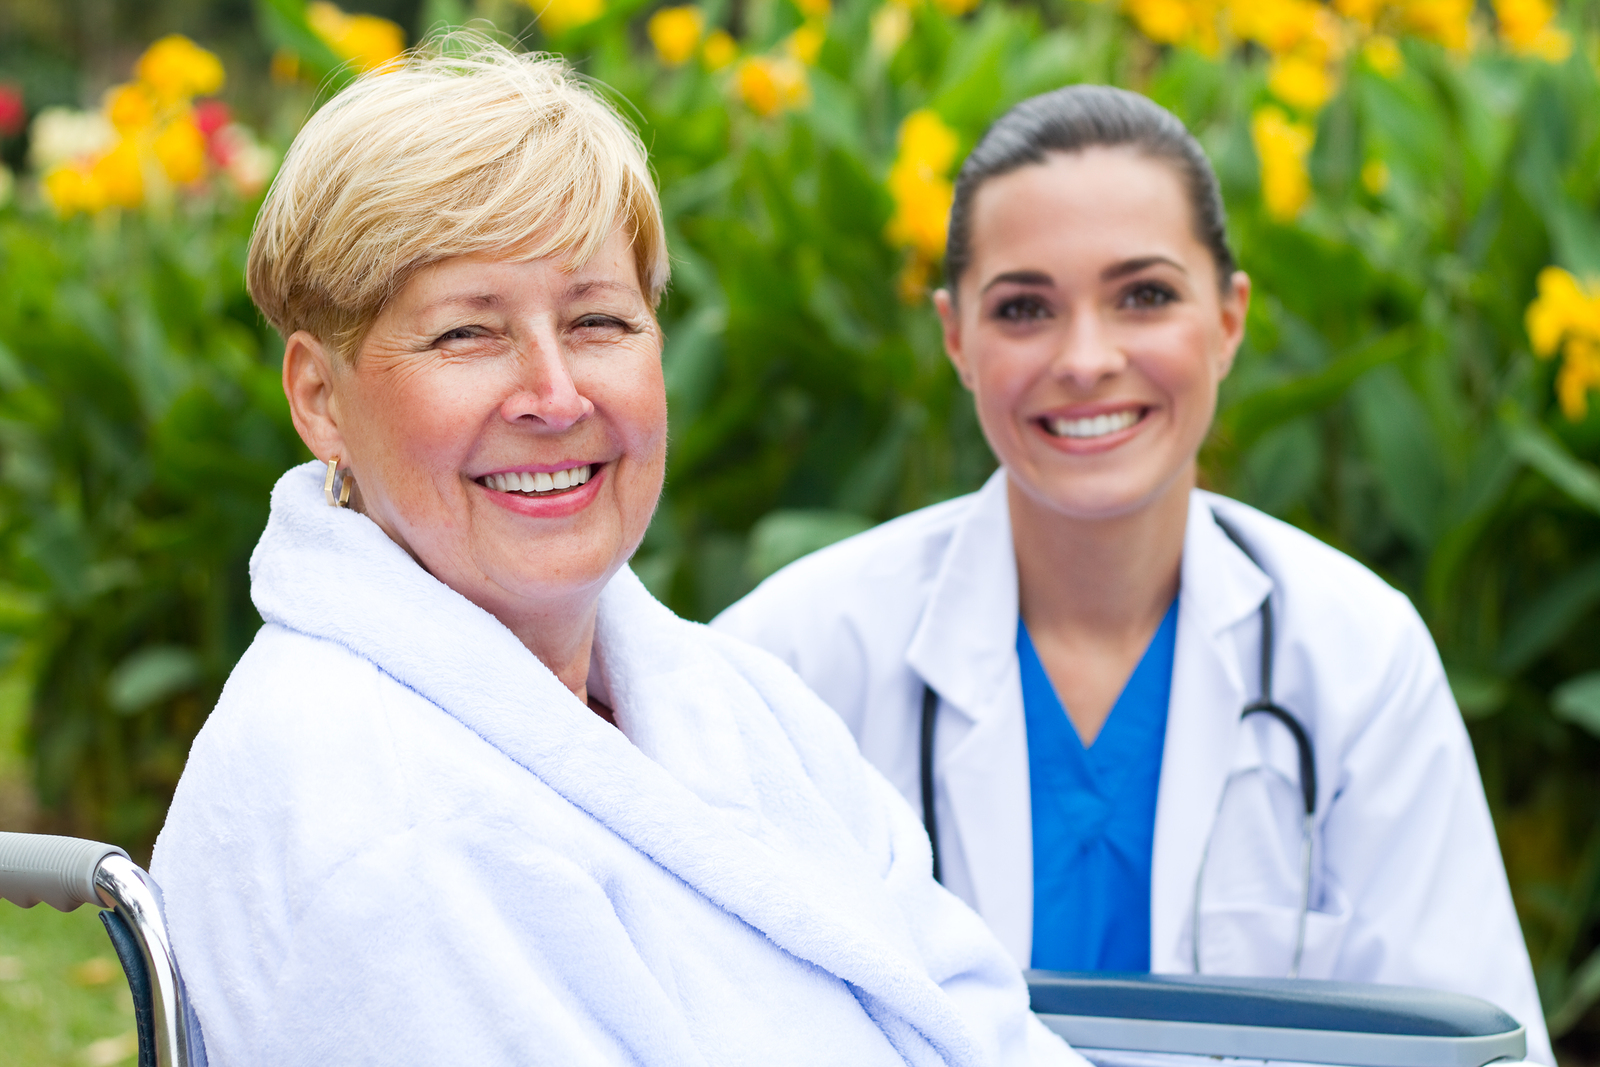 female patient and doctor outdoors and smiling